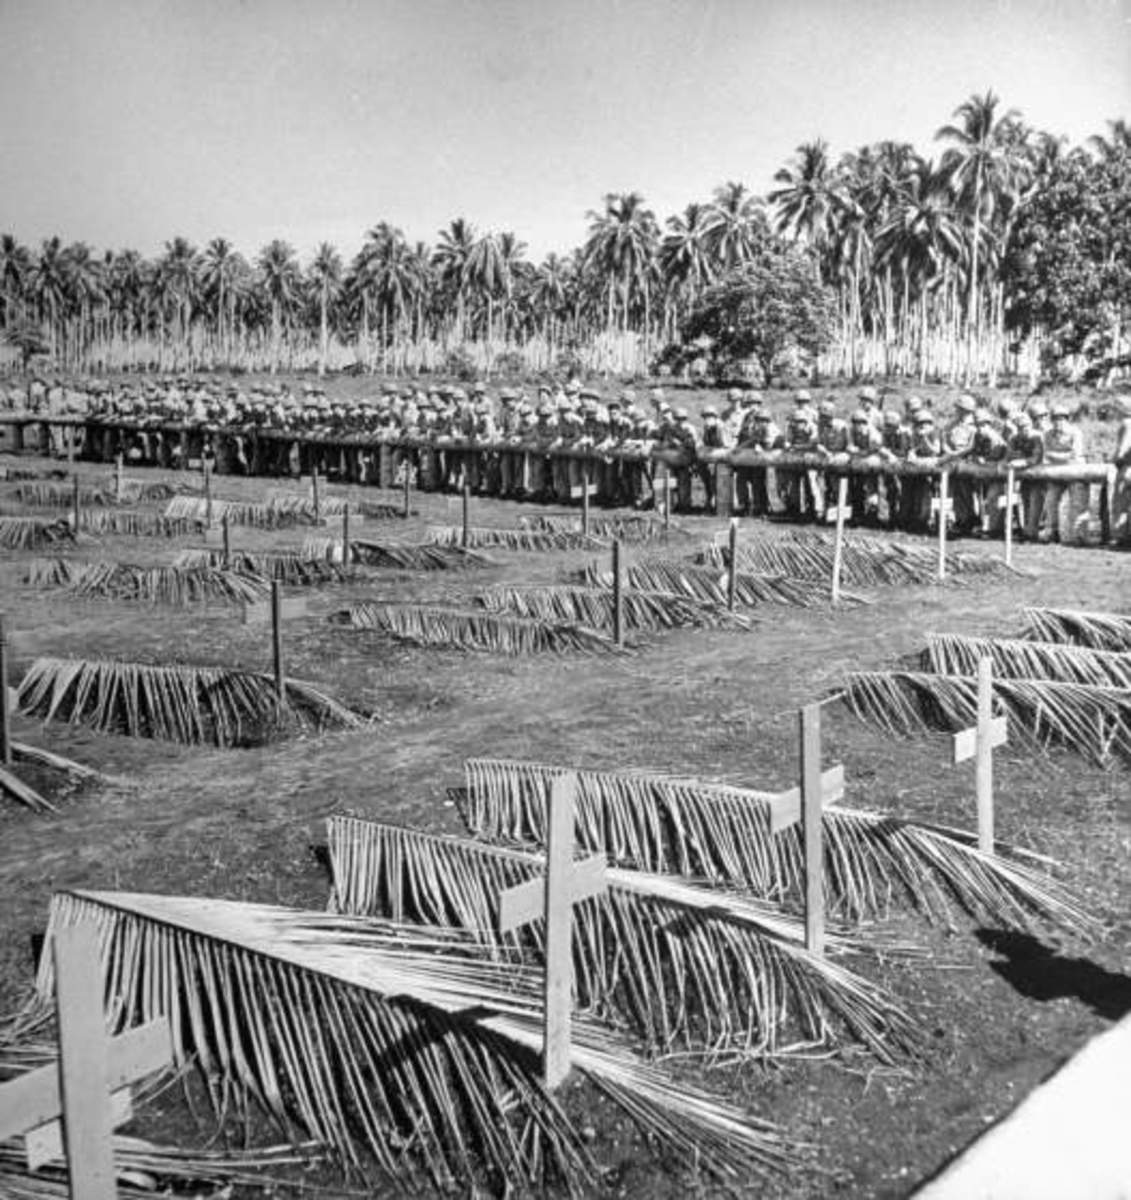 The final resting place for some of the Americans who paid the ultimate price for the capture of Guadalcanal.